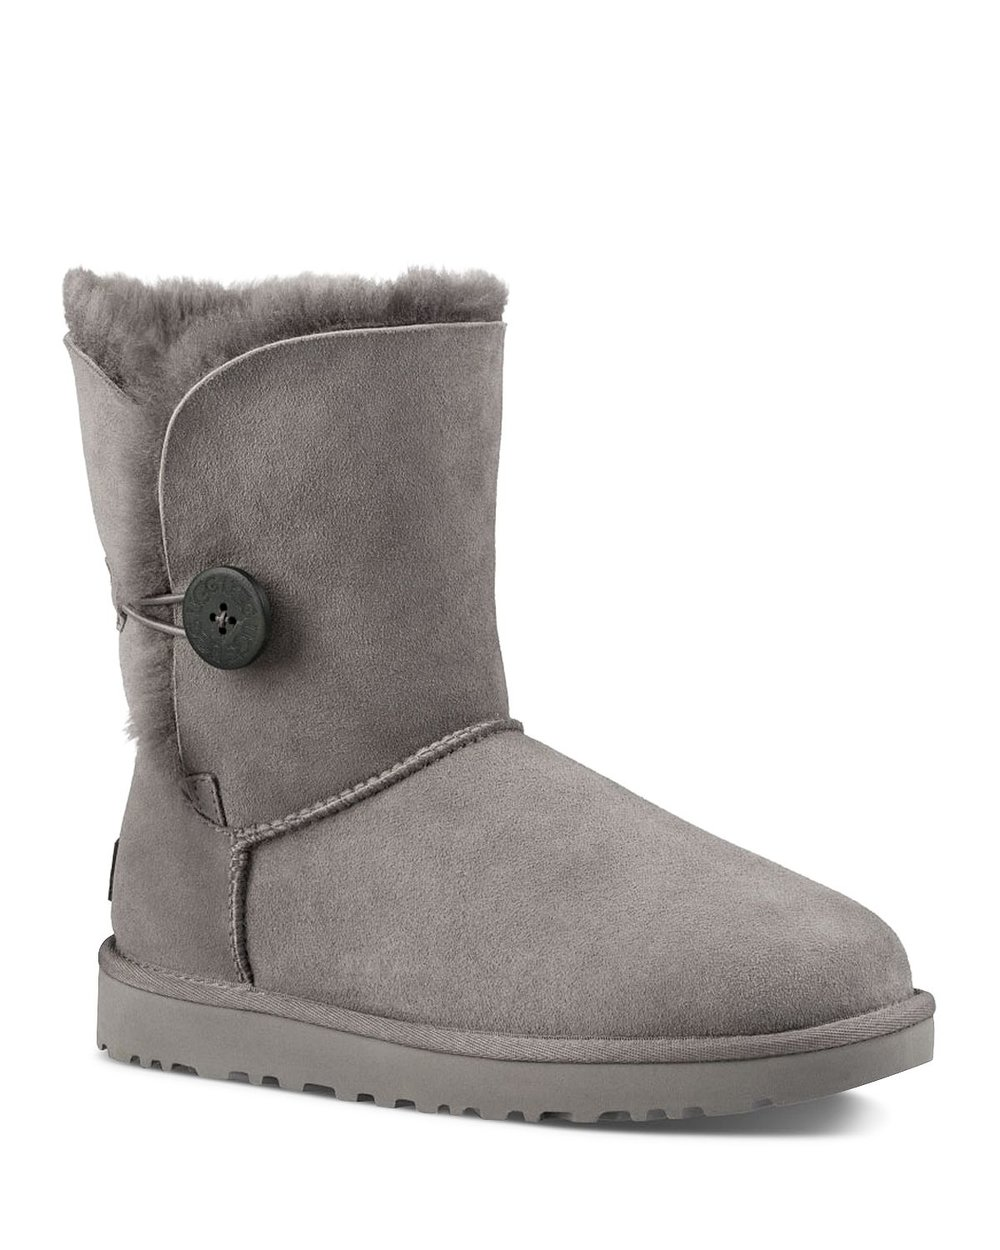 Ugg Bailey Button Booties